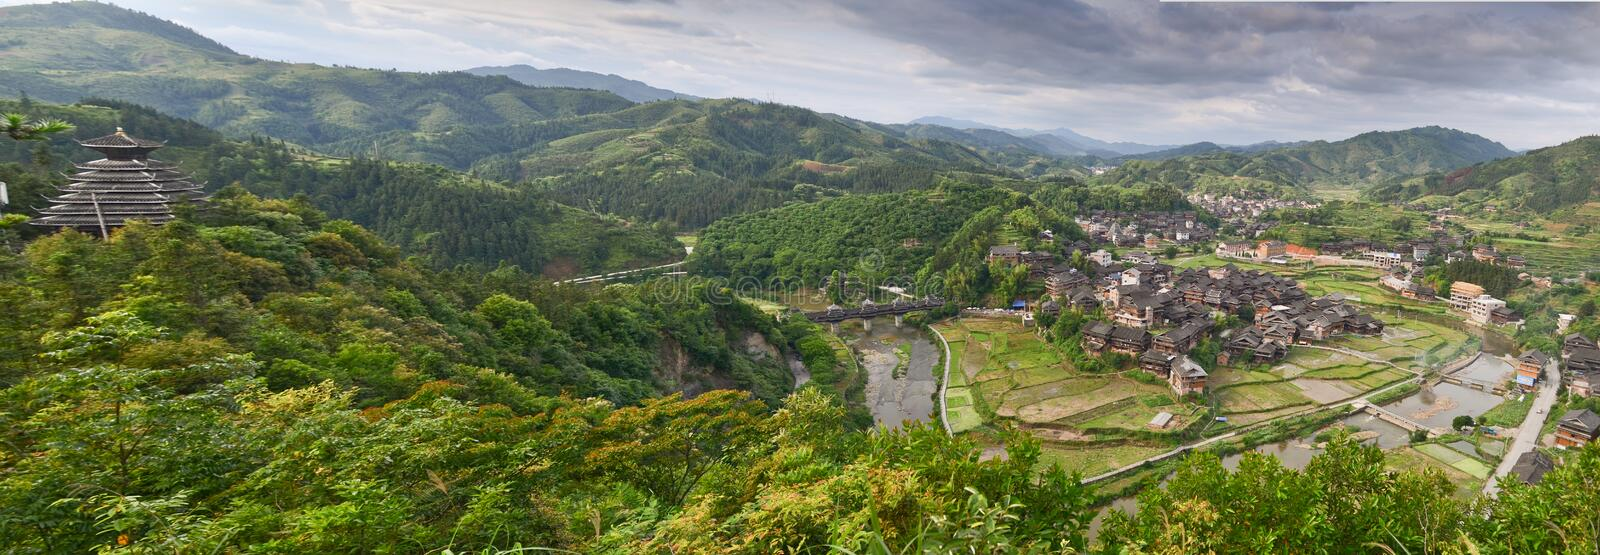 Minority village in China royalty free stock photography